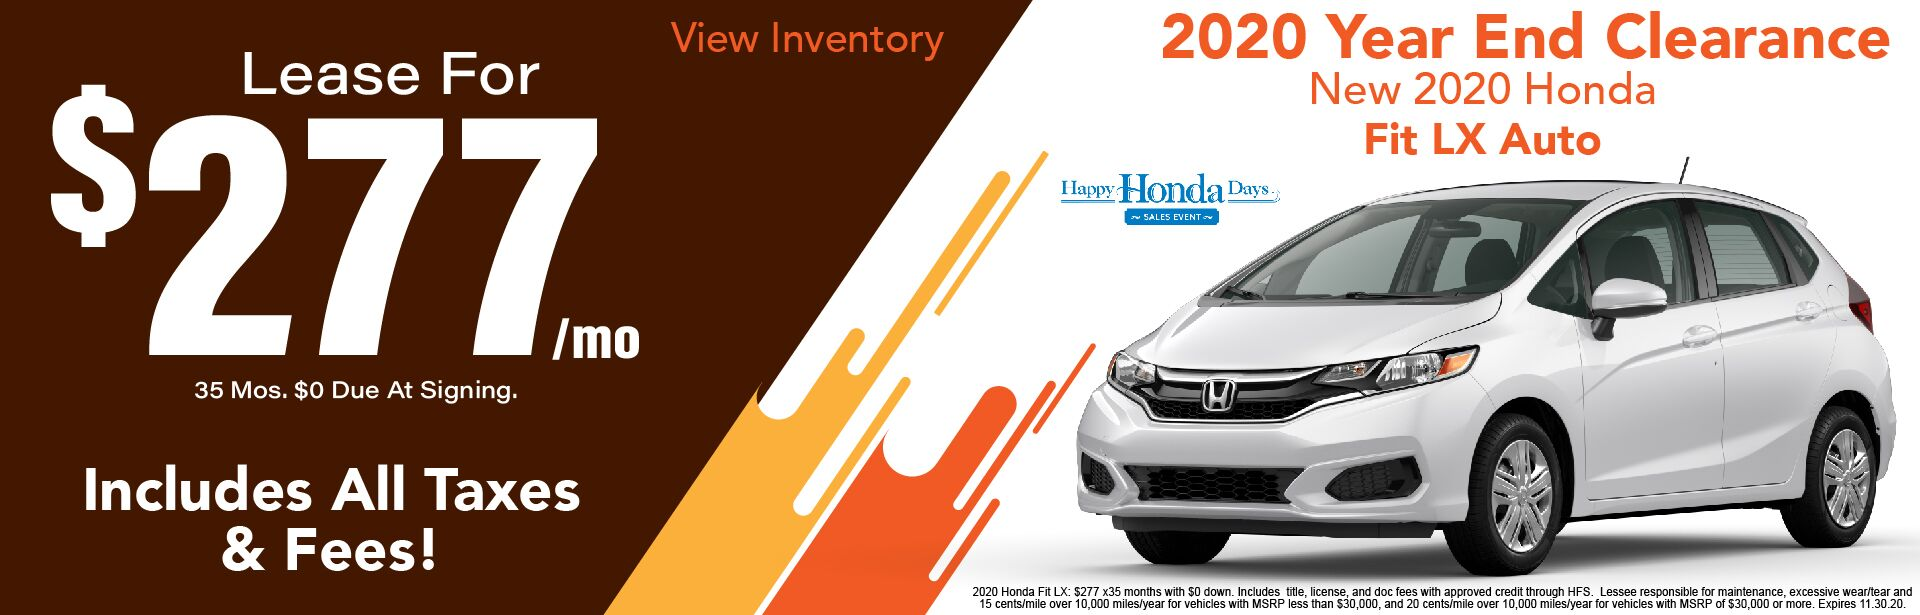 2020 Honda Fit LX Lease